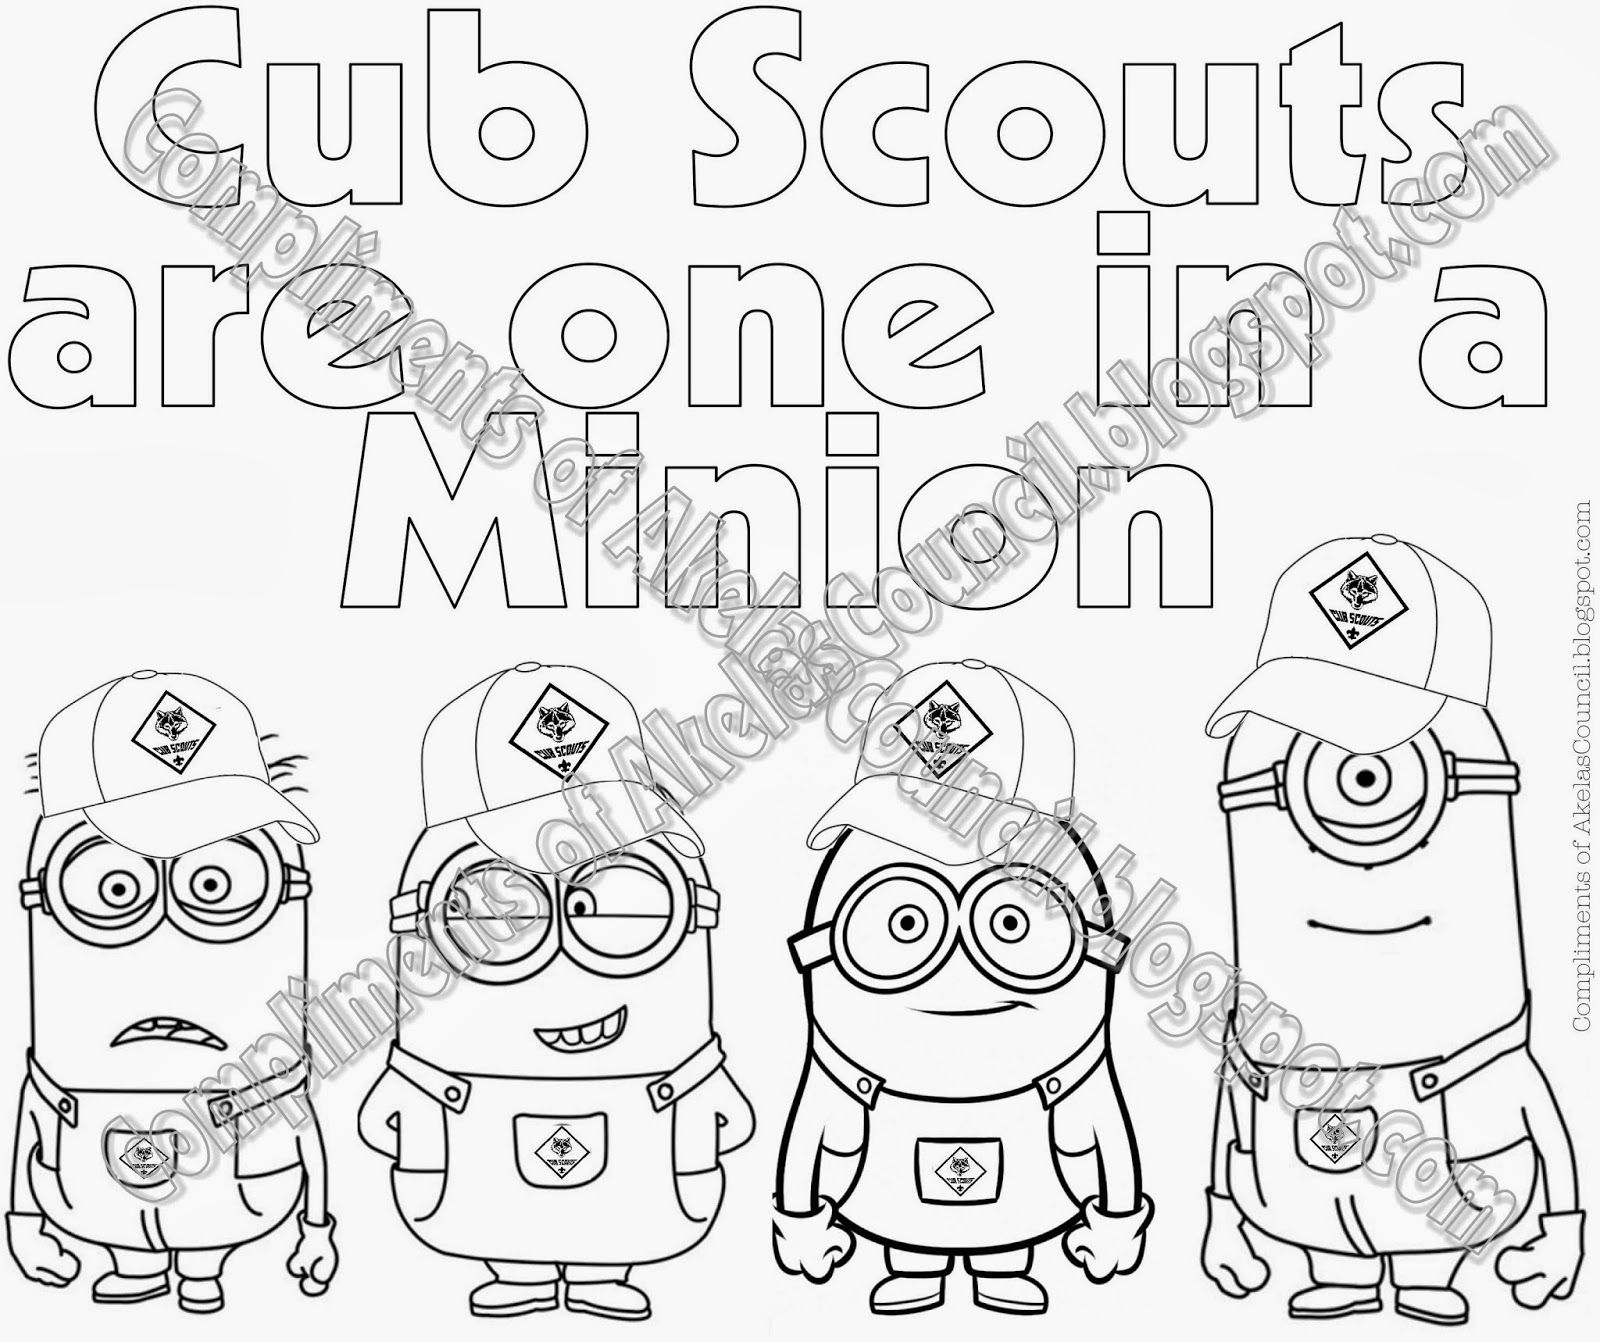 Cub Scout Minions Printable Coloring Page From Deable Me Great Table Decoration For The Blue Gold Banquet